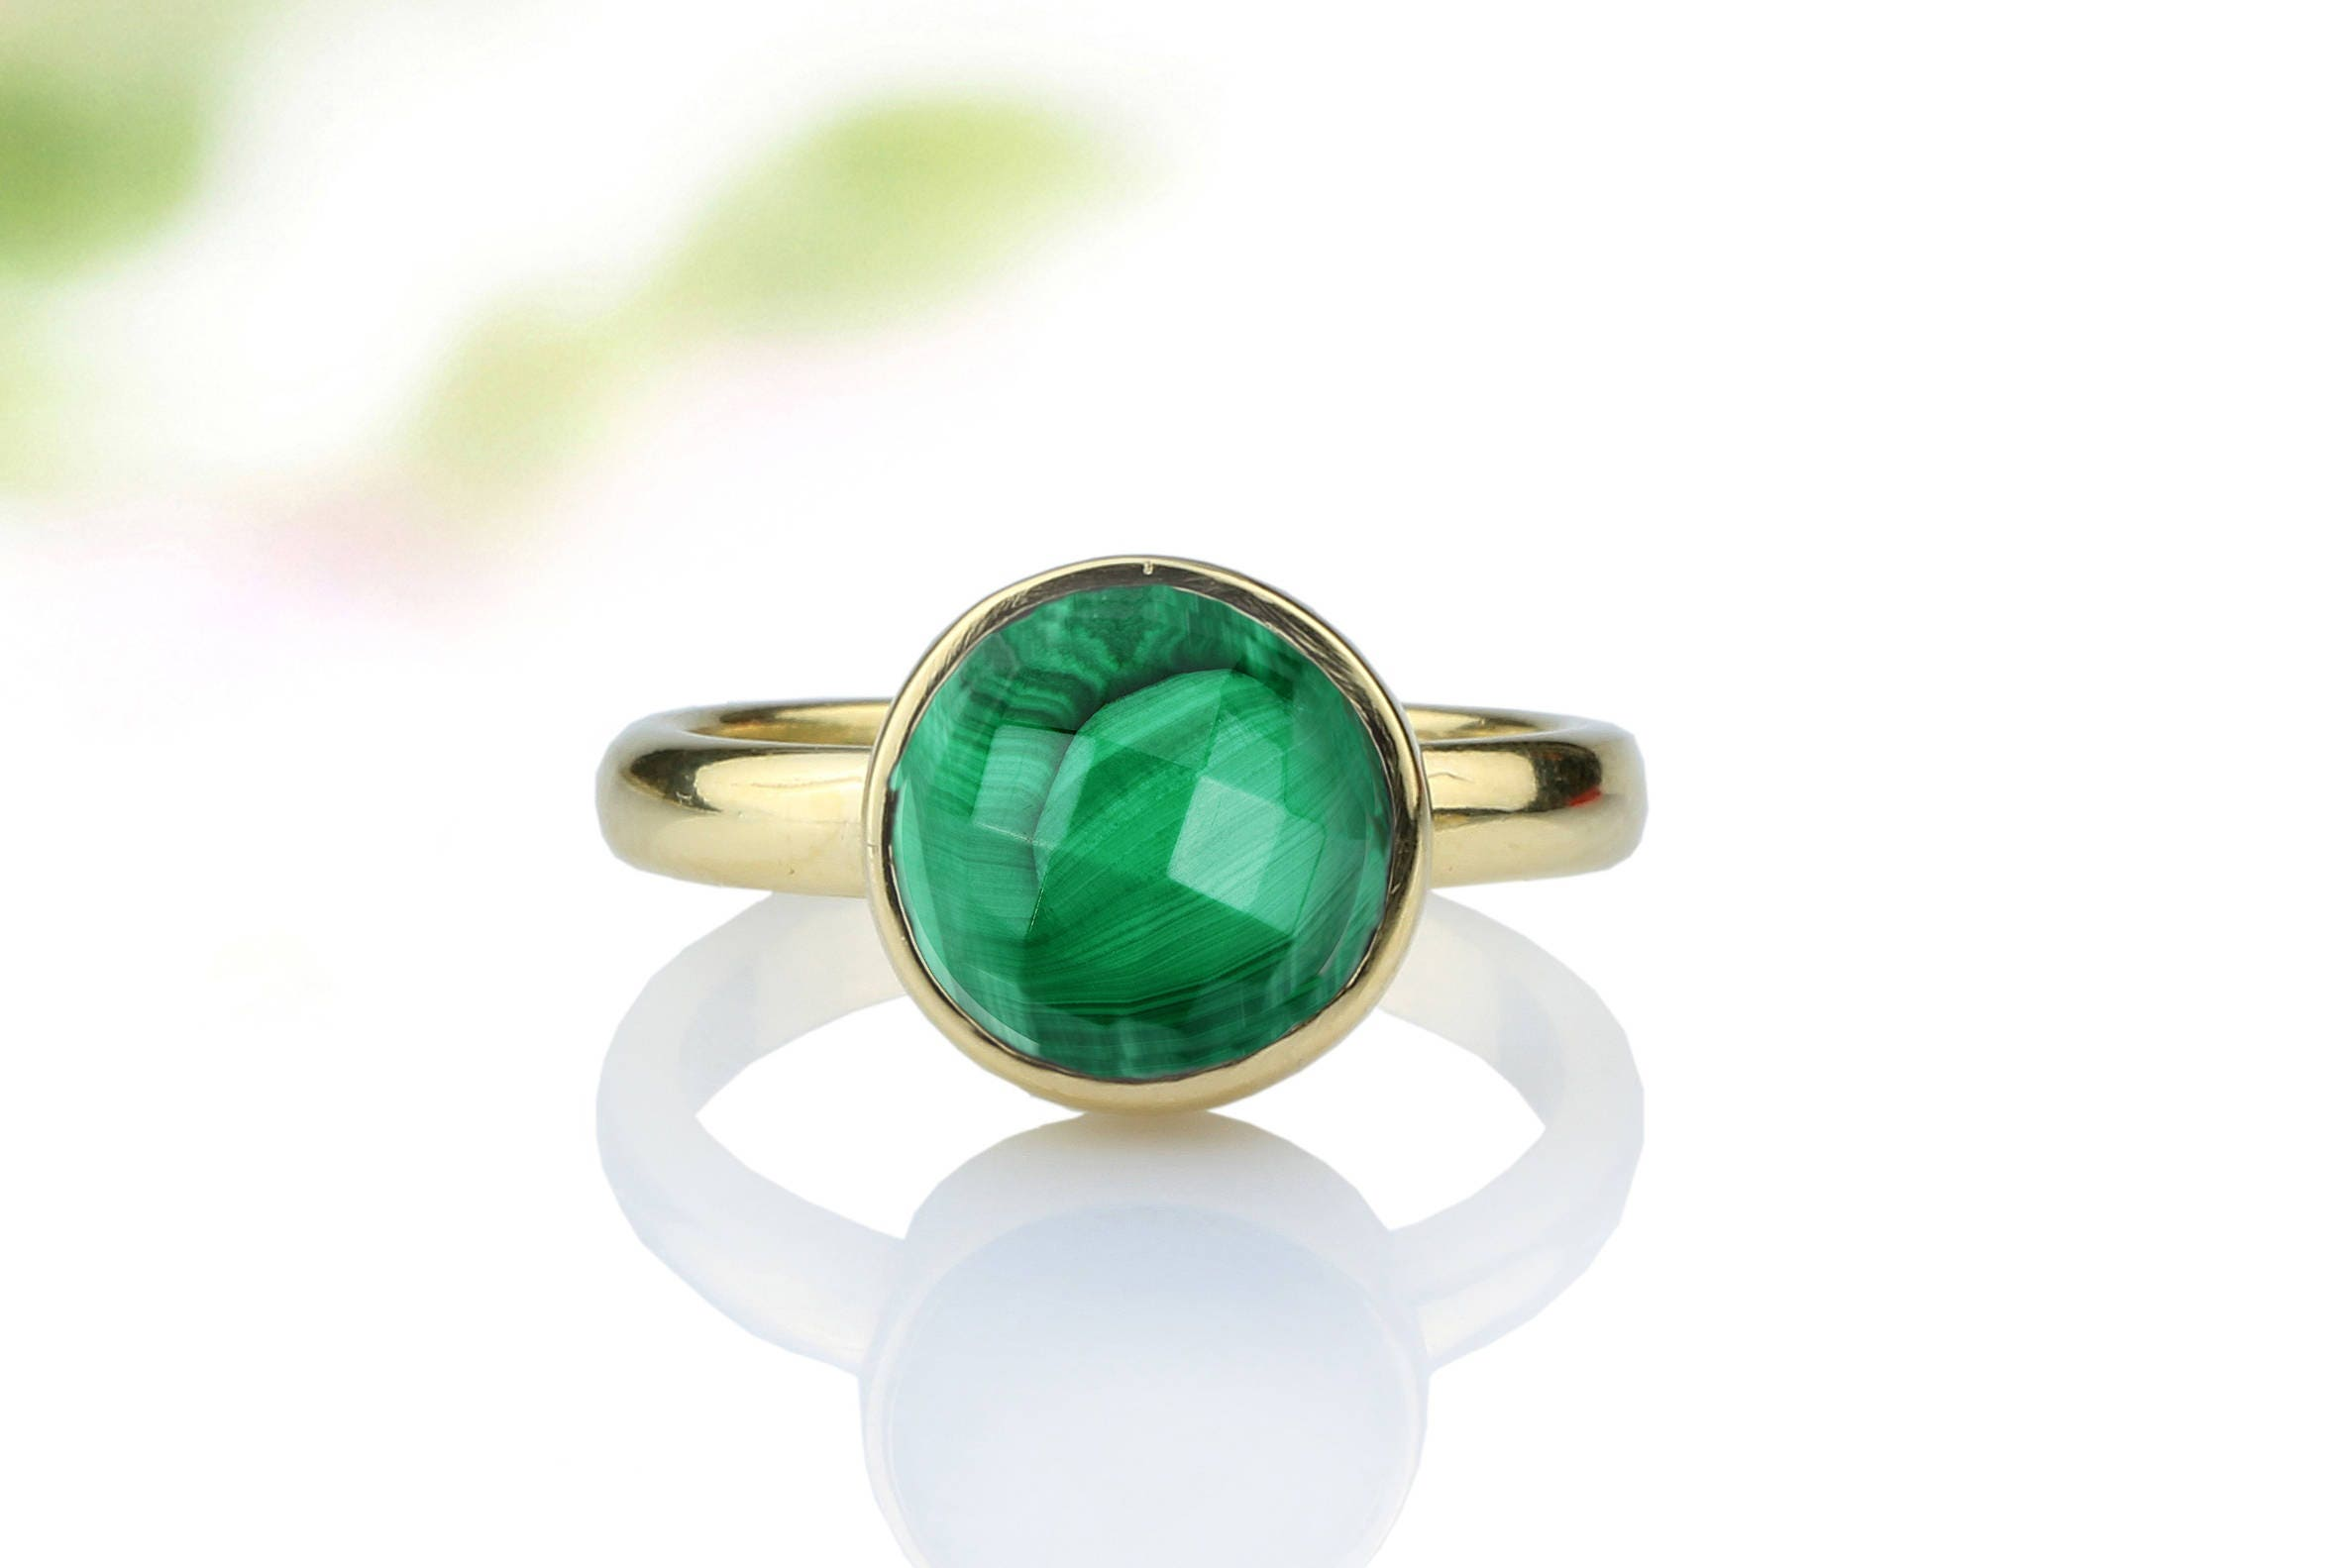 hela rings collections agate ring constellation gemstone products thethorragnarokcollection green